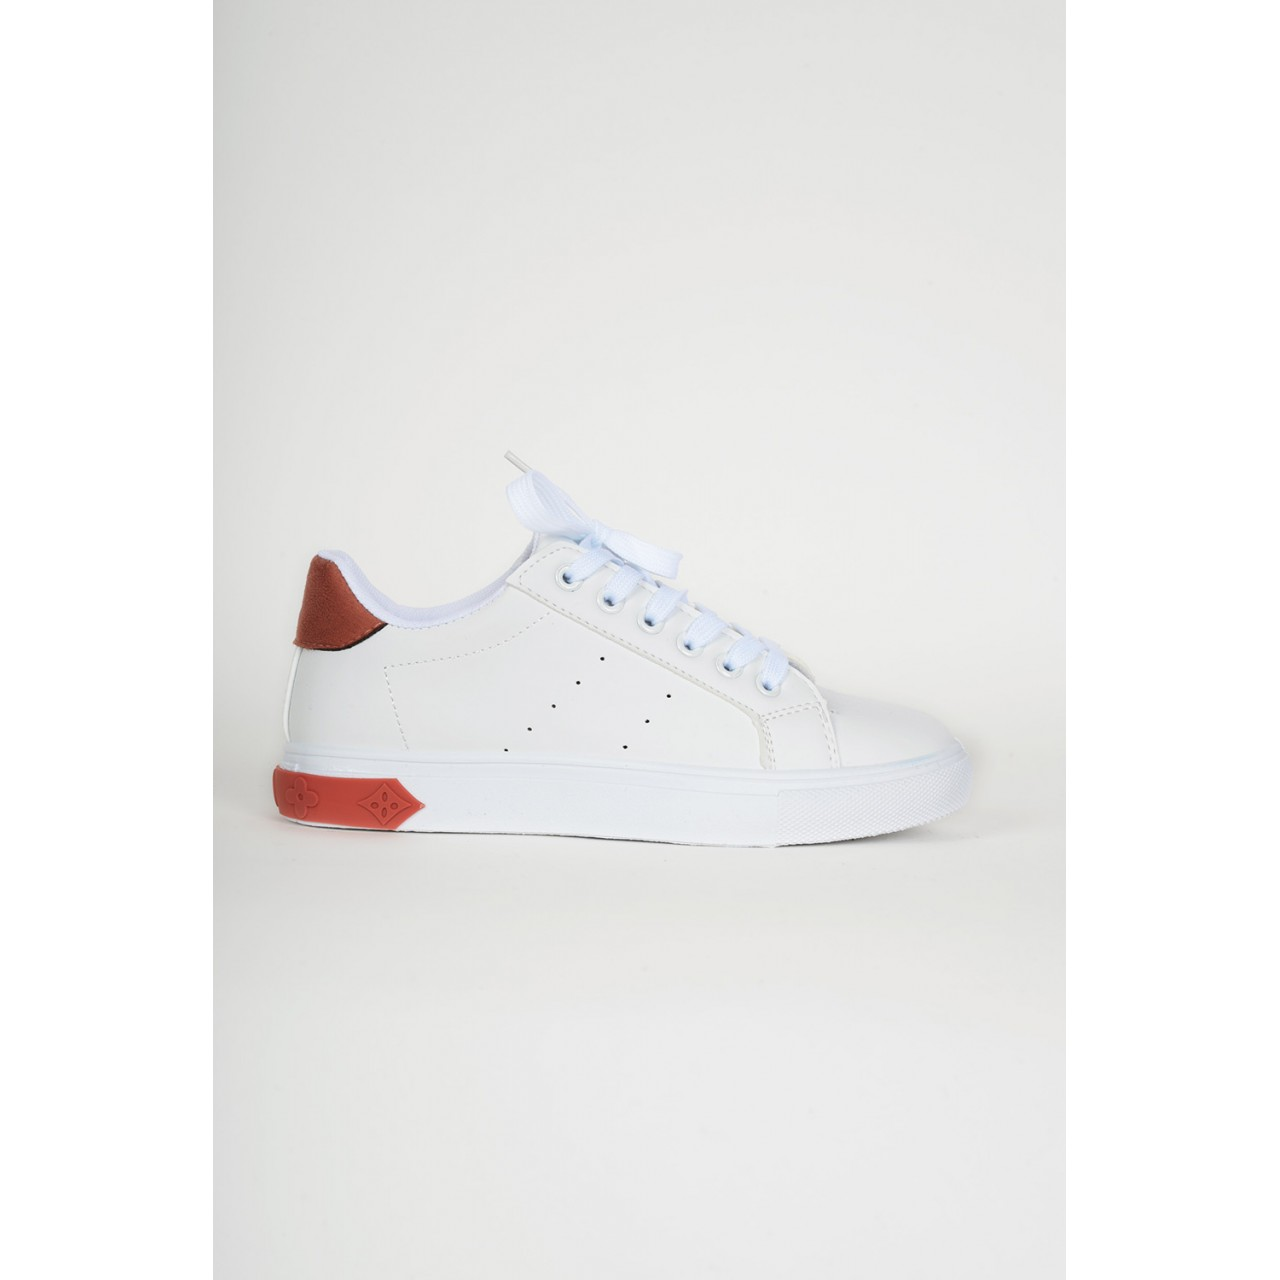 Sneaker with two tone colours